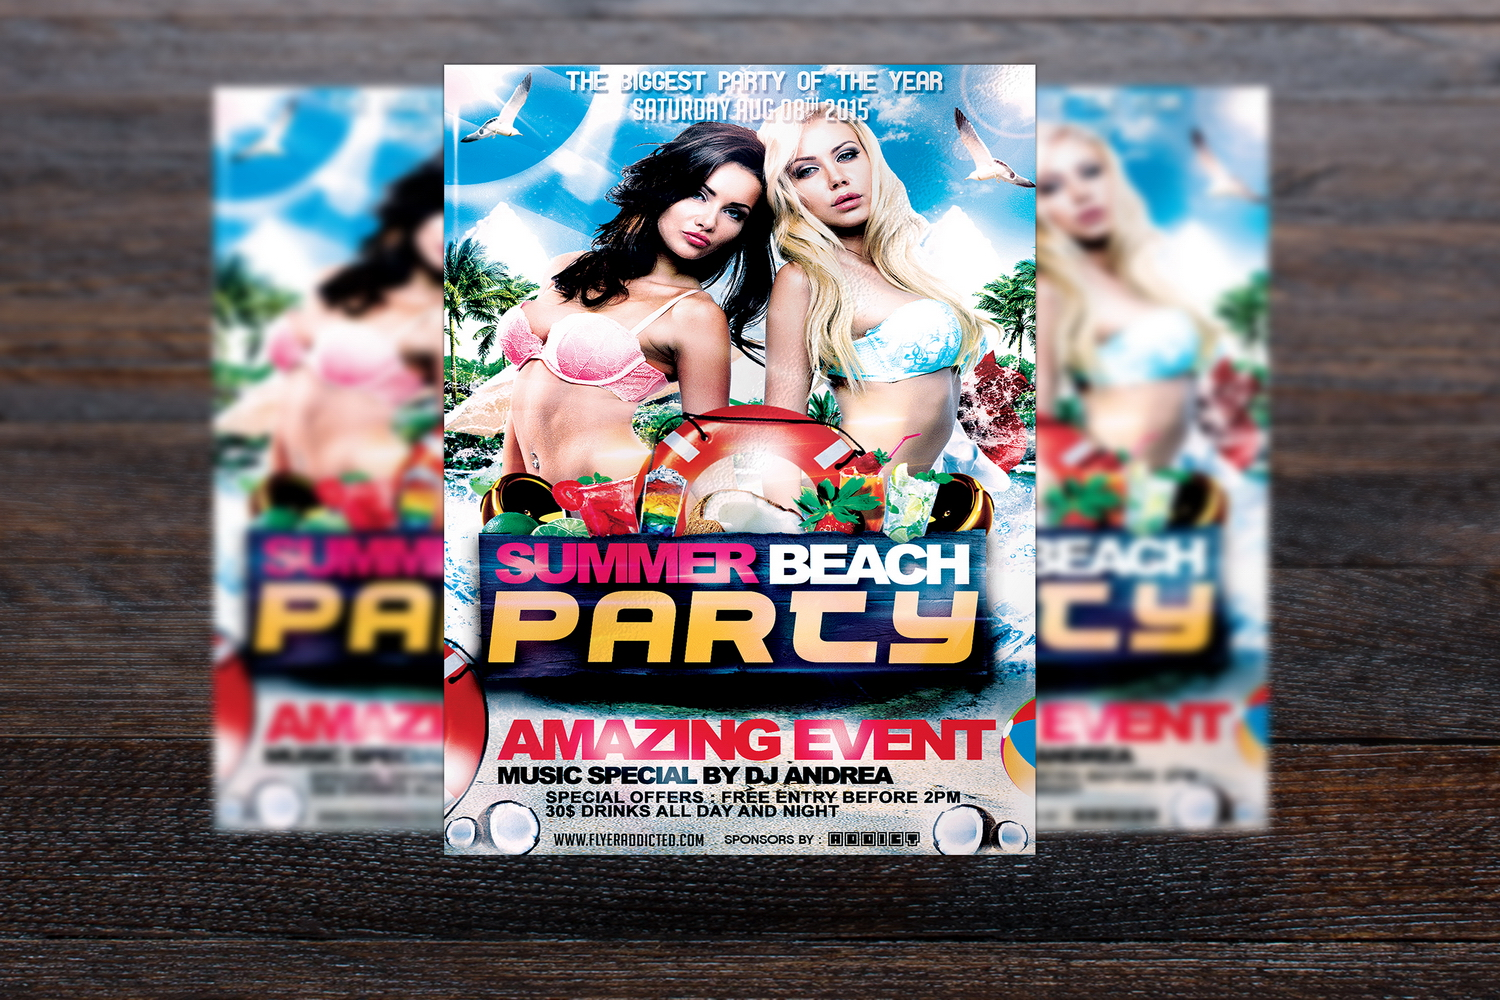 Summer Beach Party Flyer example image 1